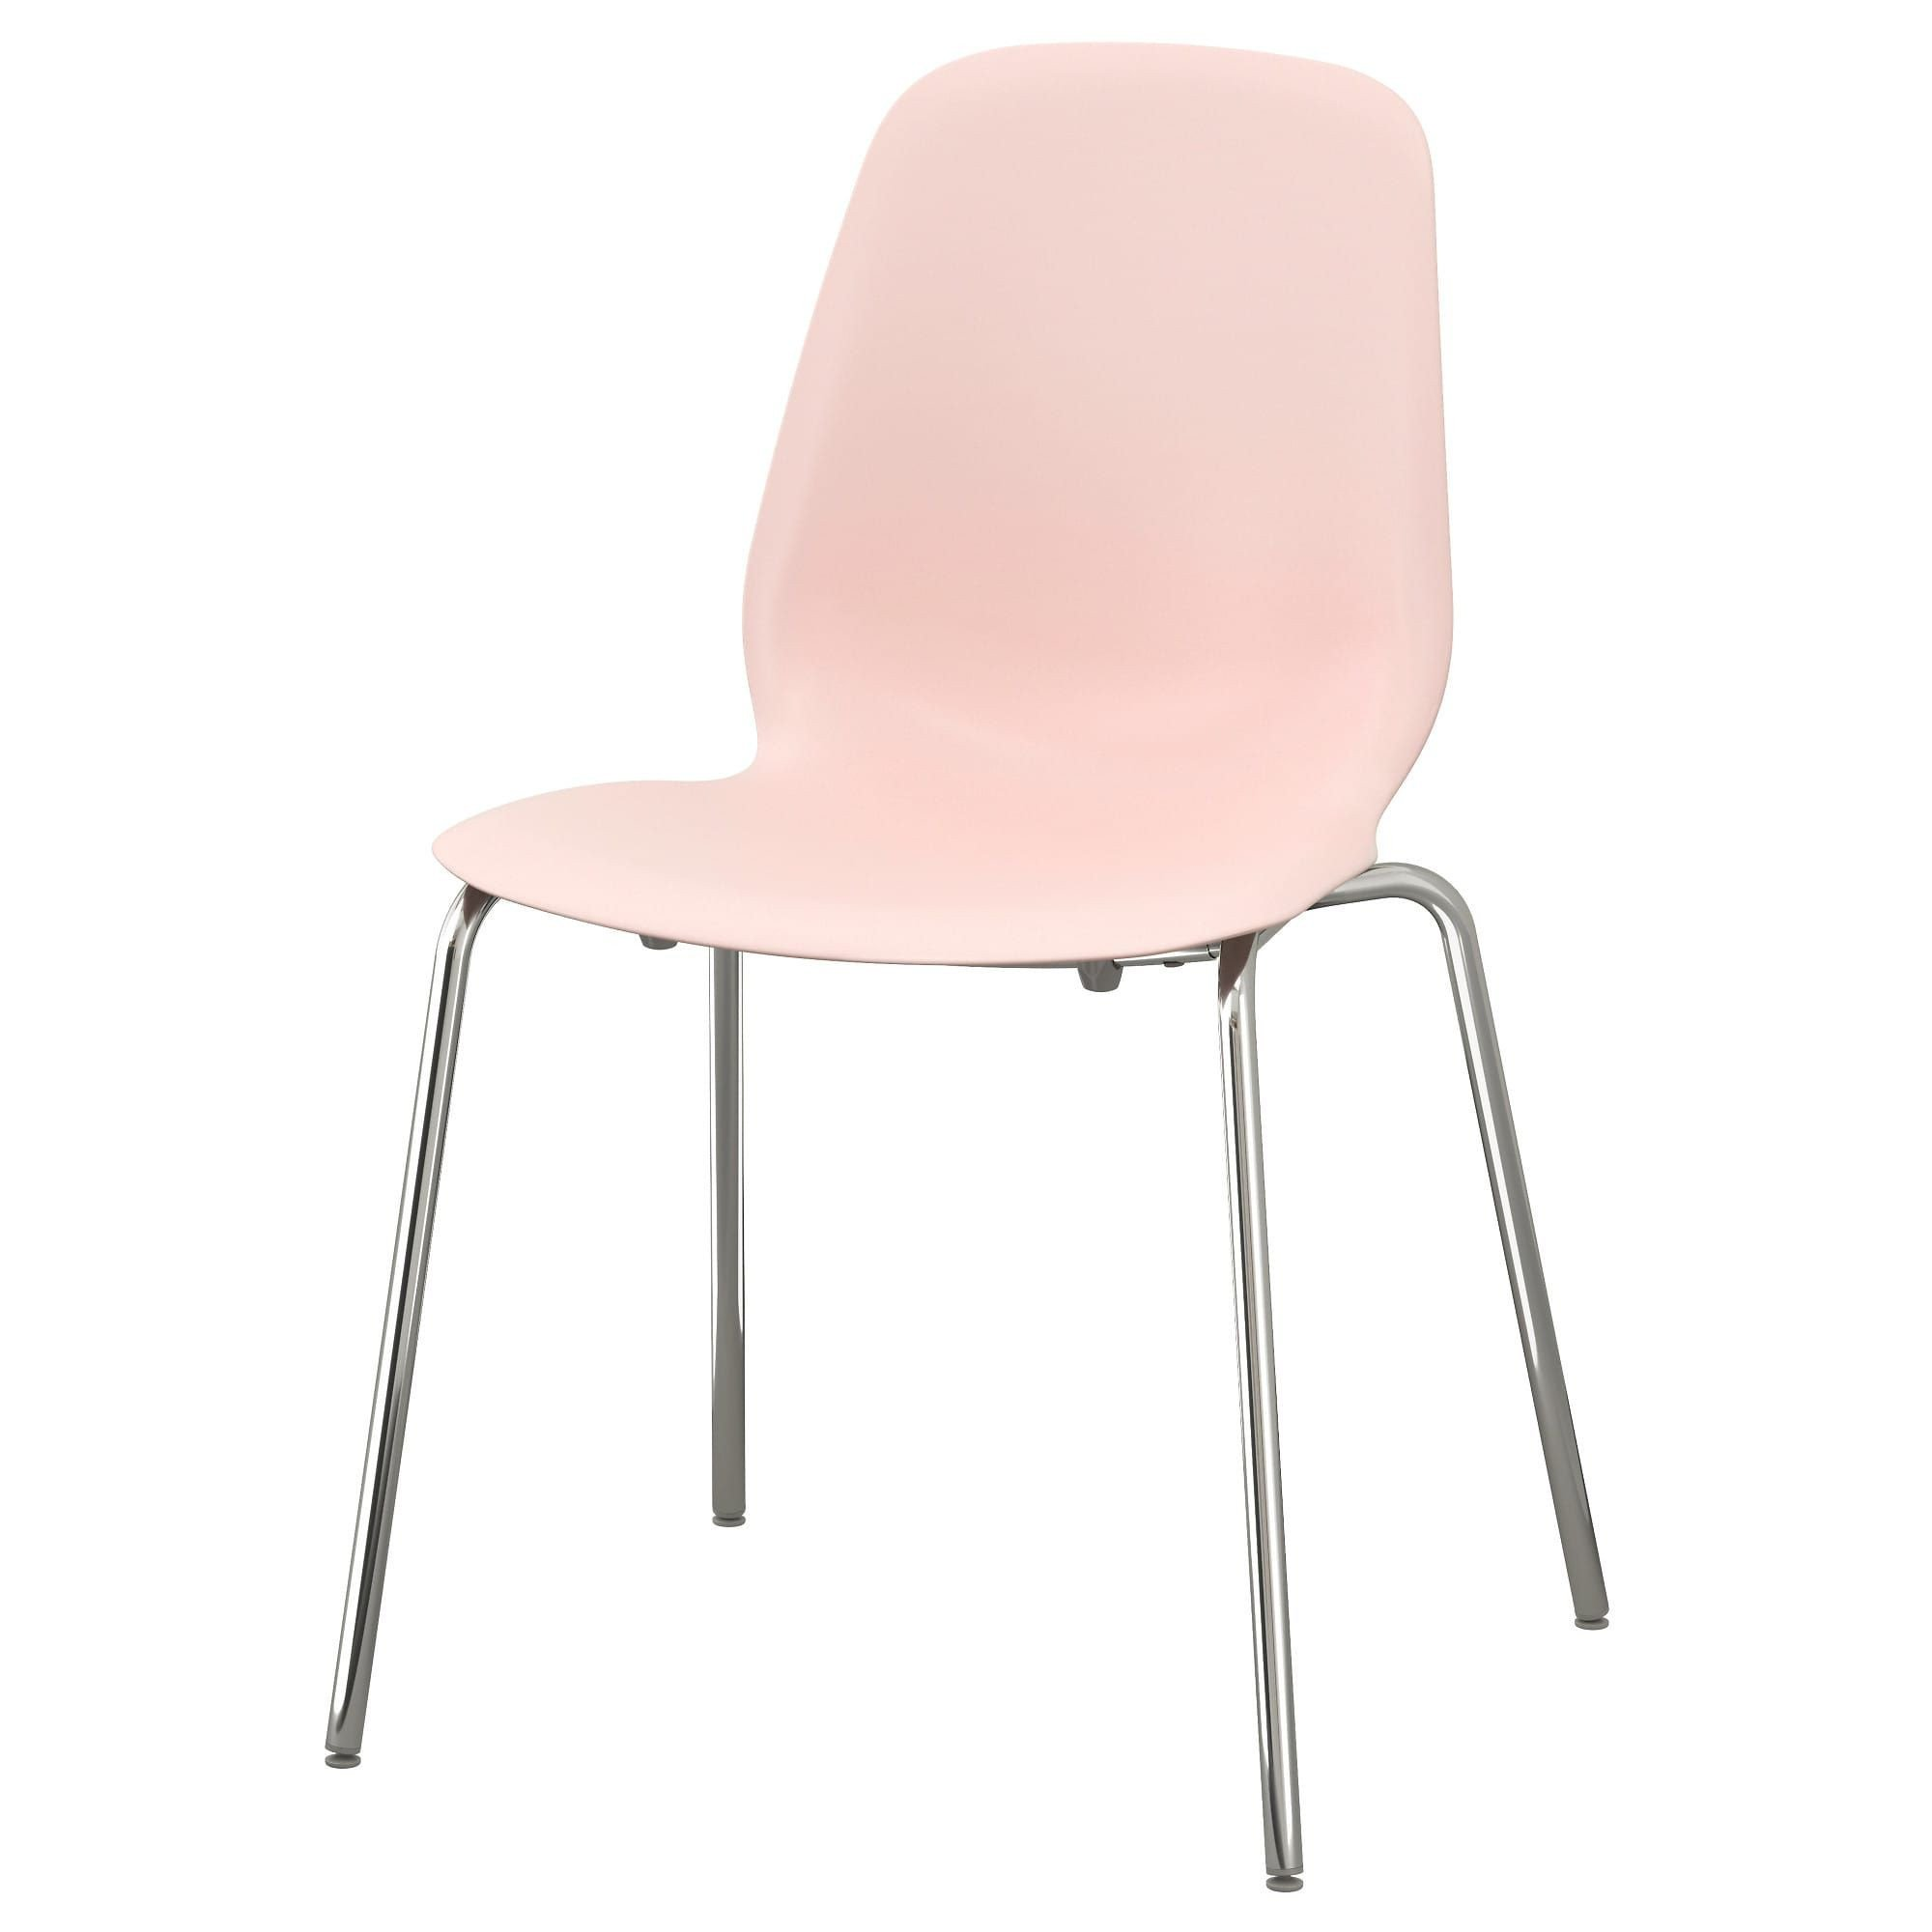 Pink Chair for Bedroom Awesome Furniture and Home Furnishings In 2019